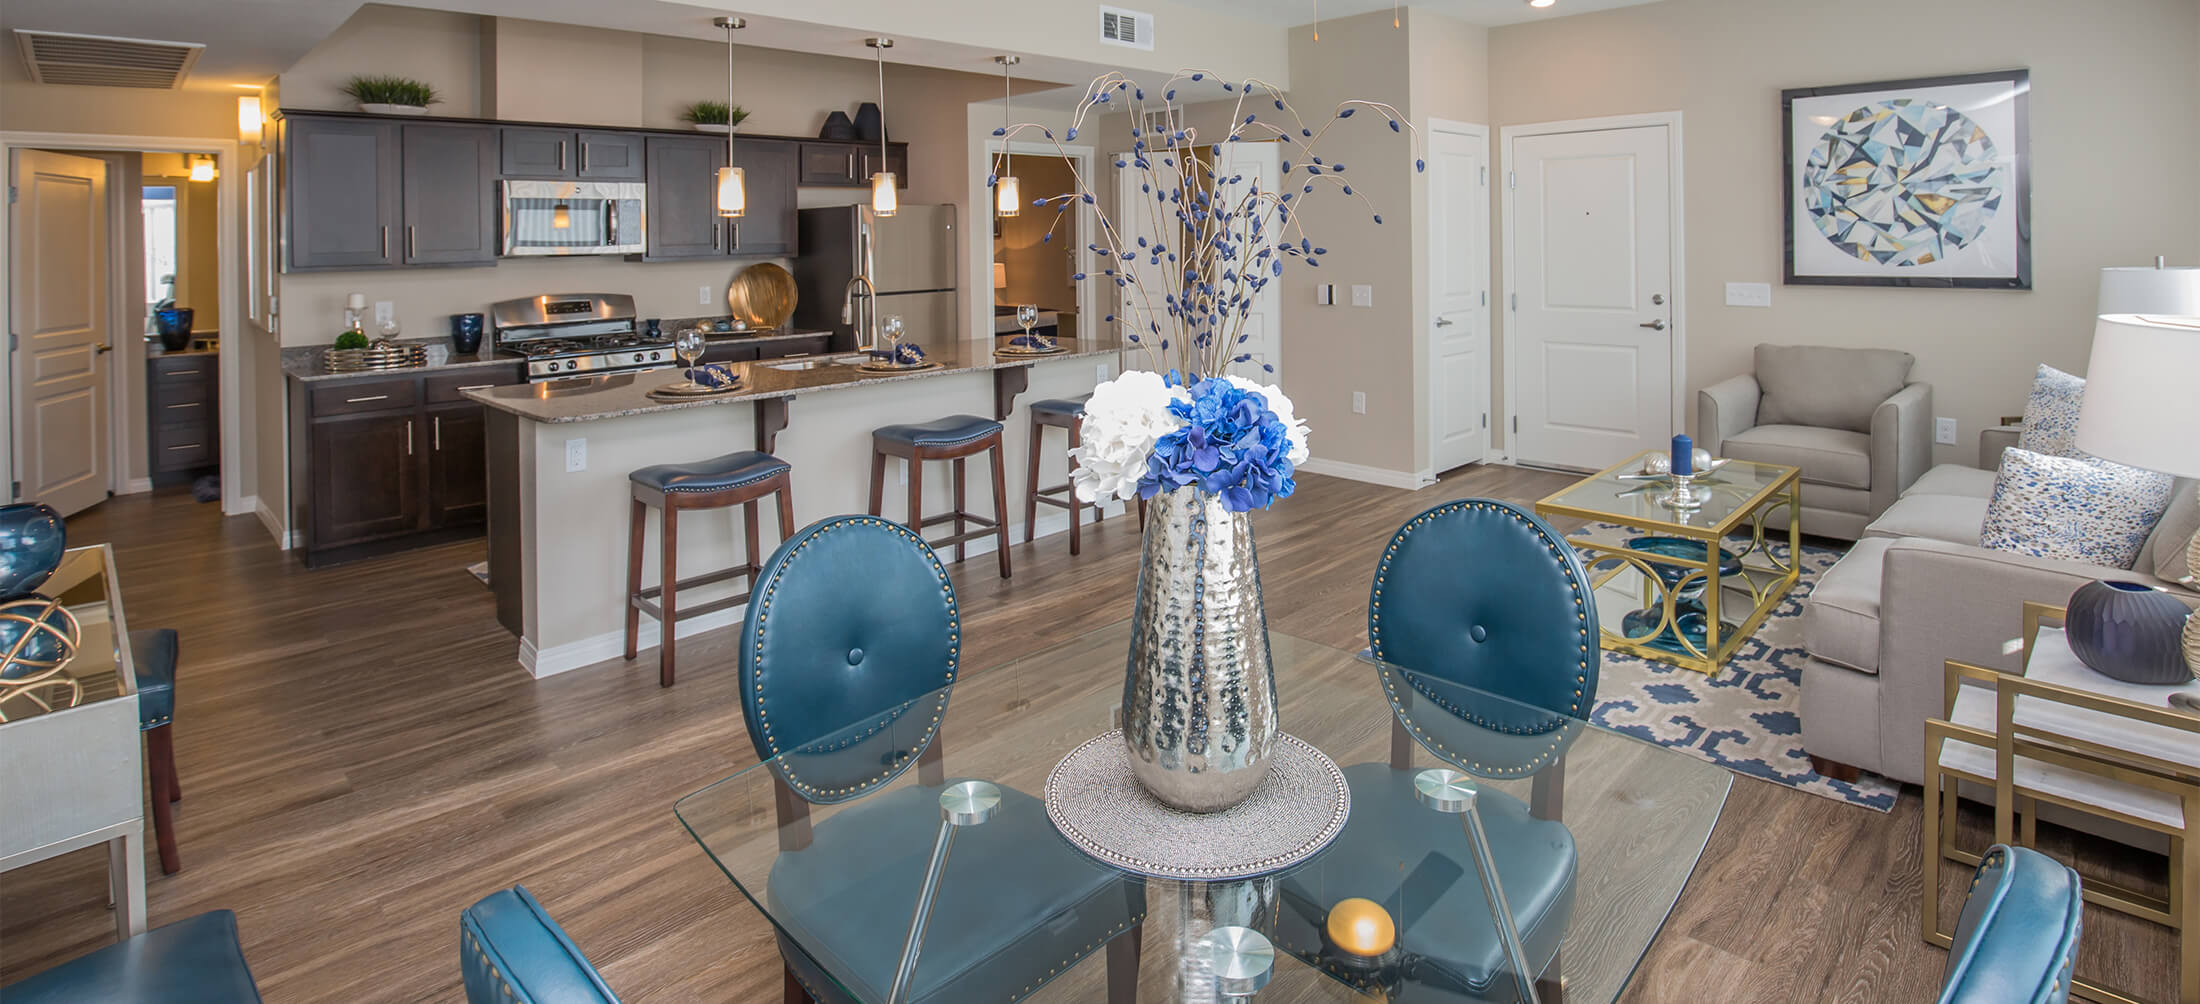 The Passage Apartments - Apartments in Henderson, NV